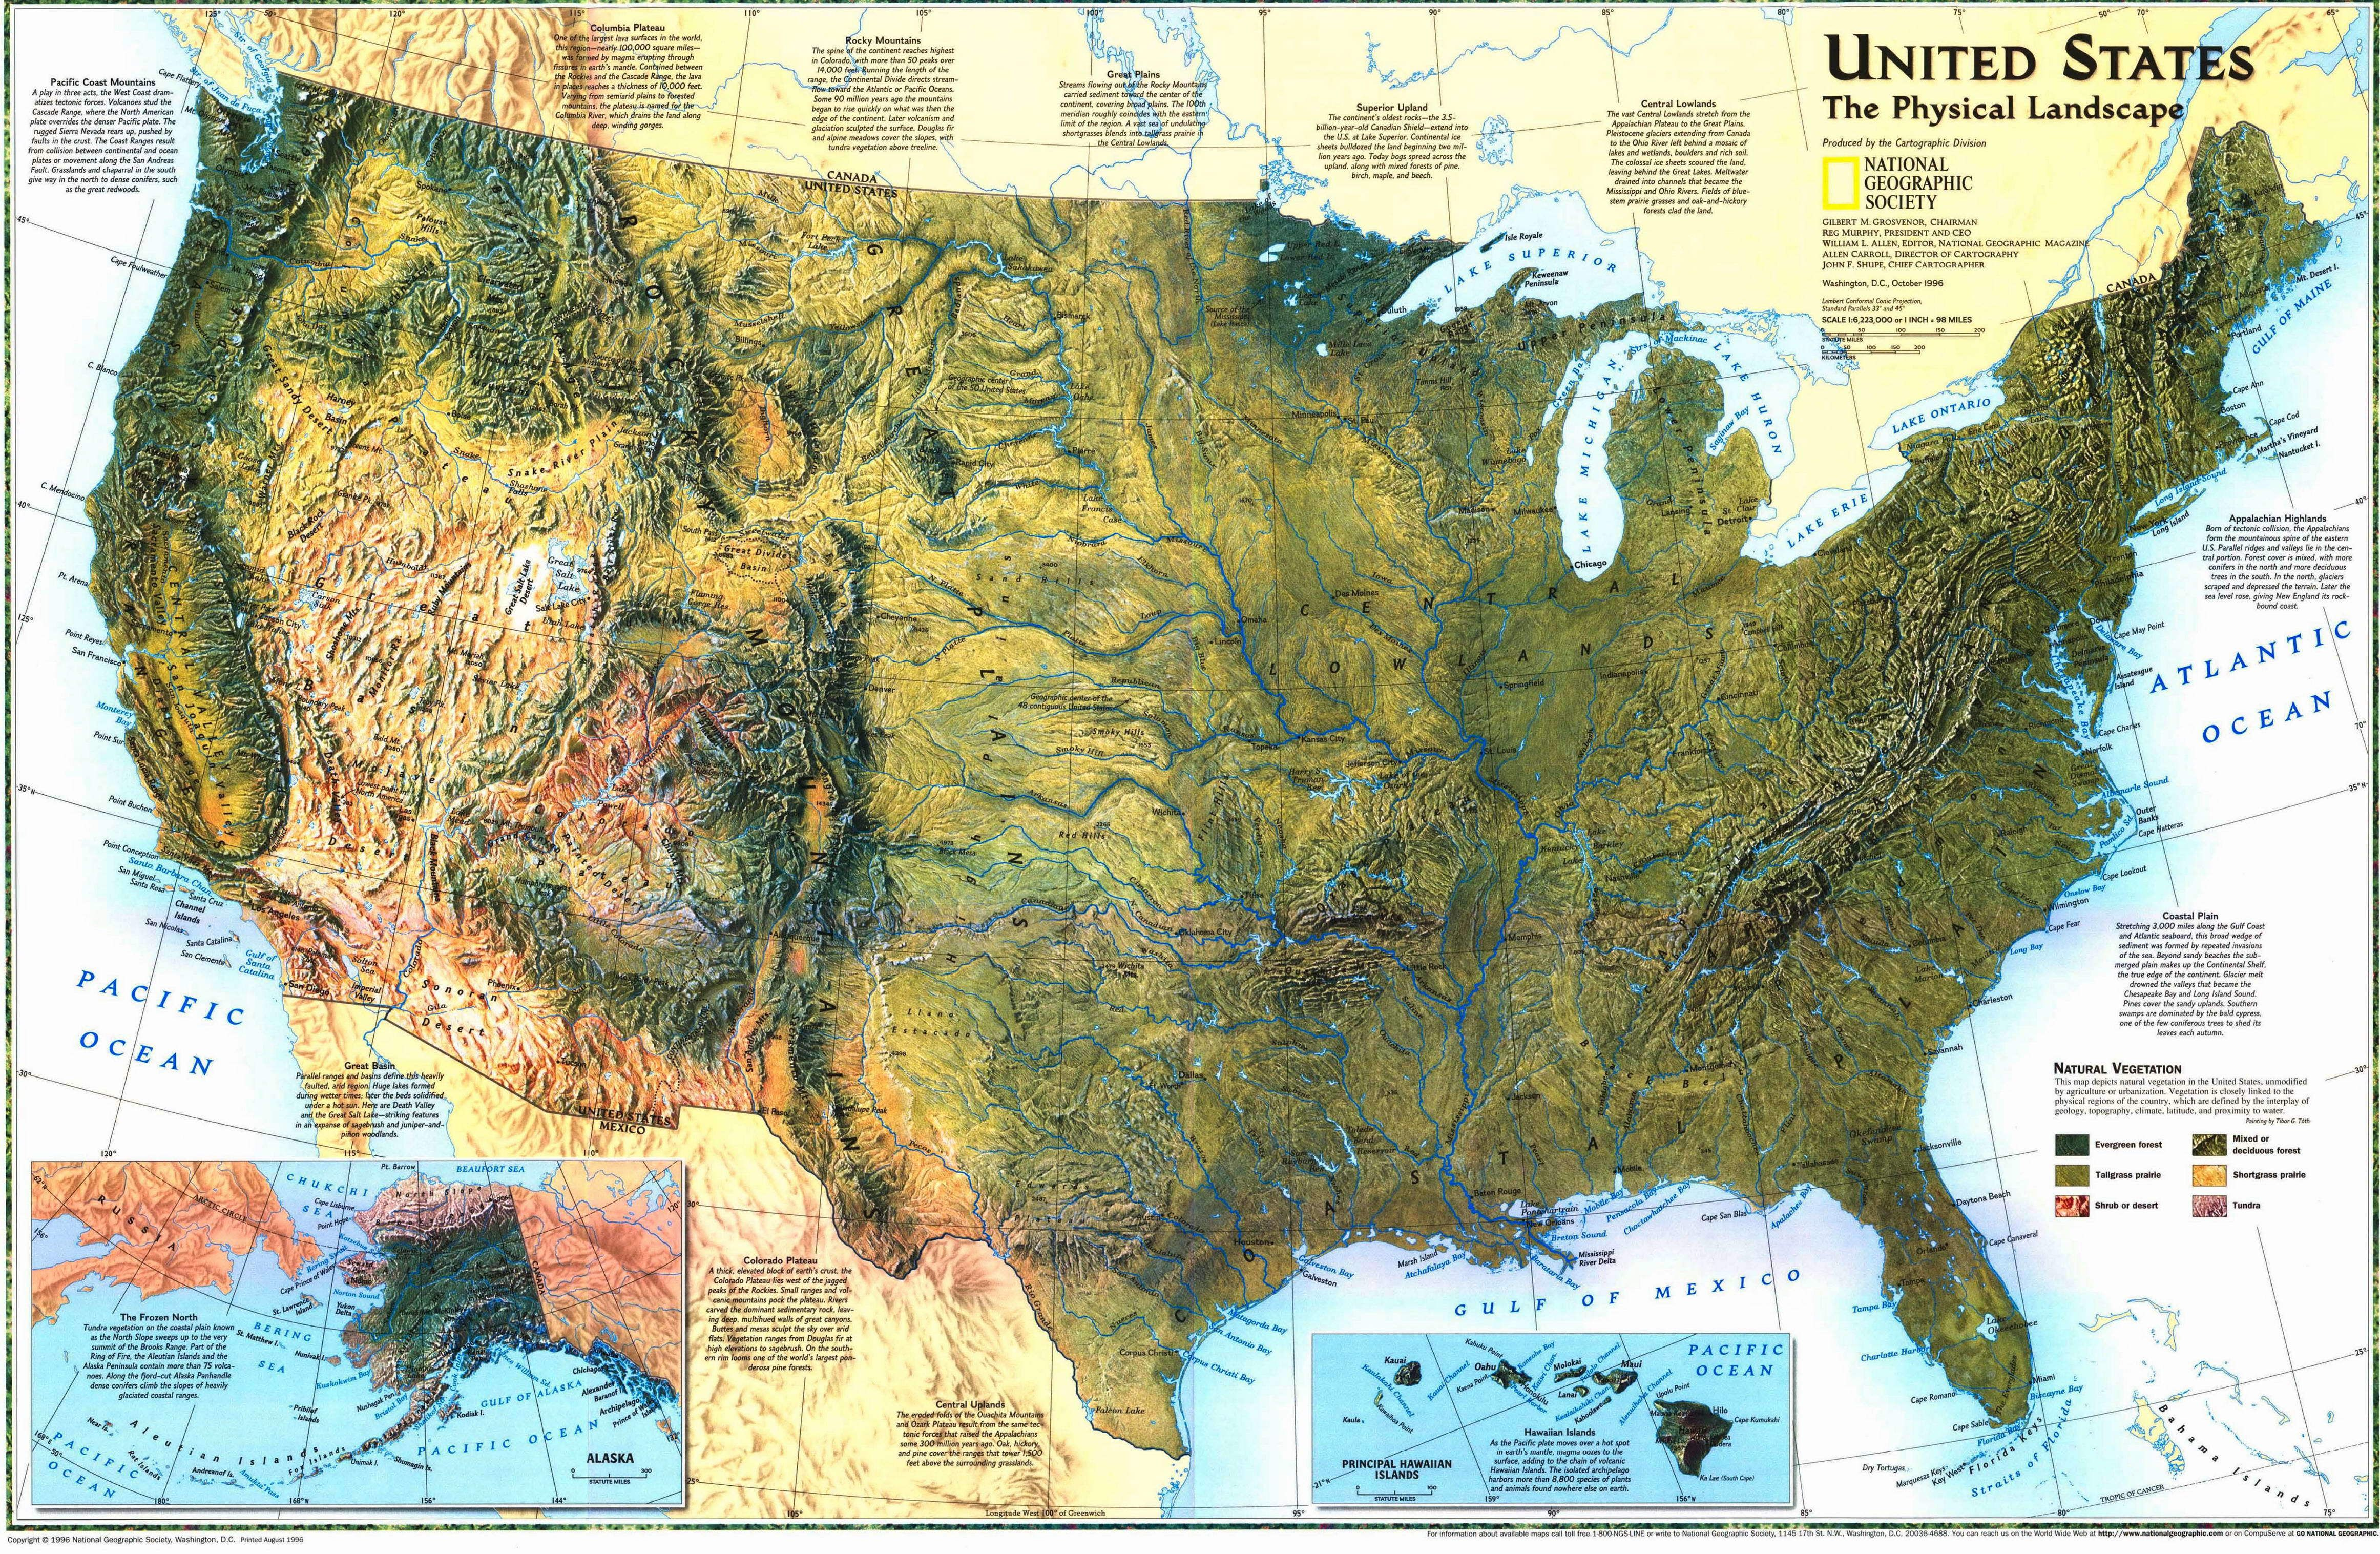 United States The Physical Landscape